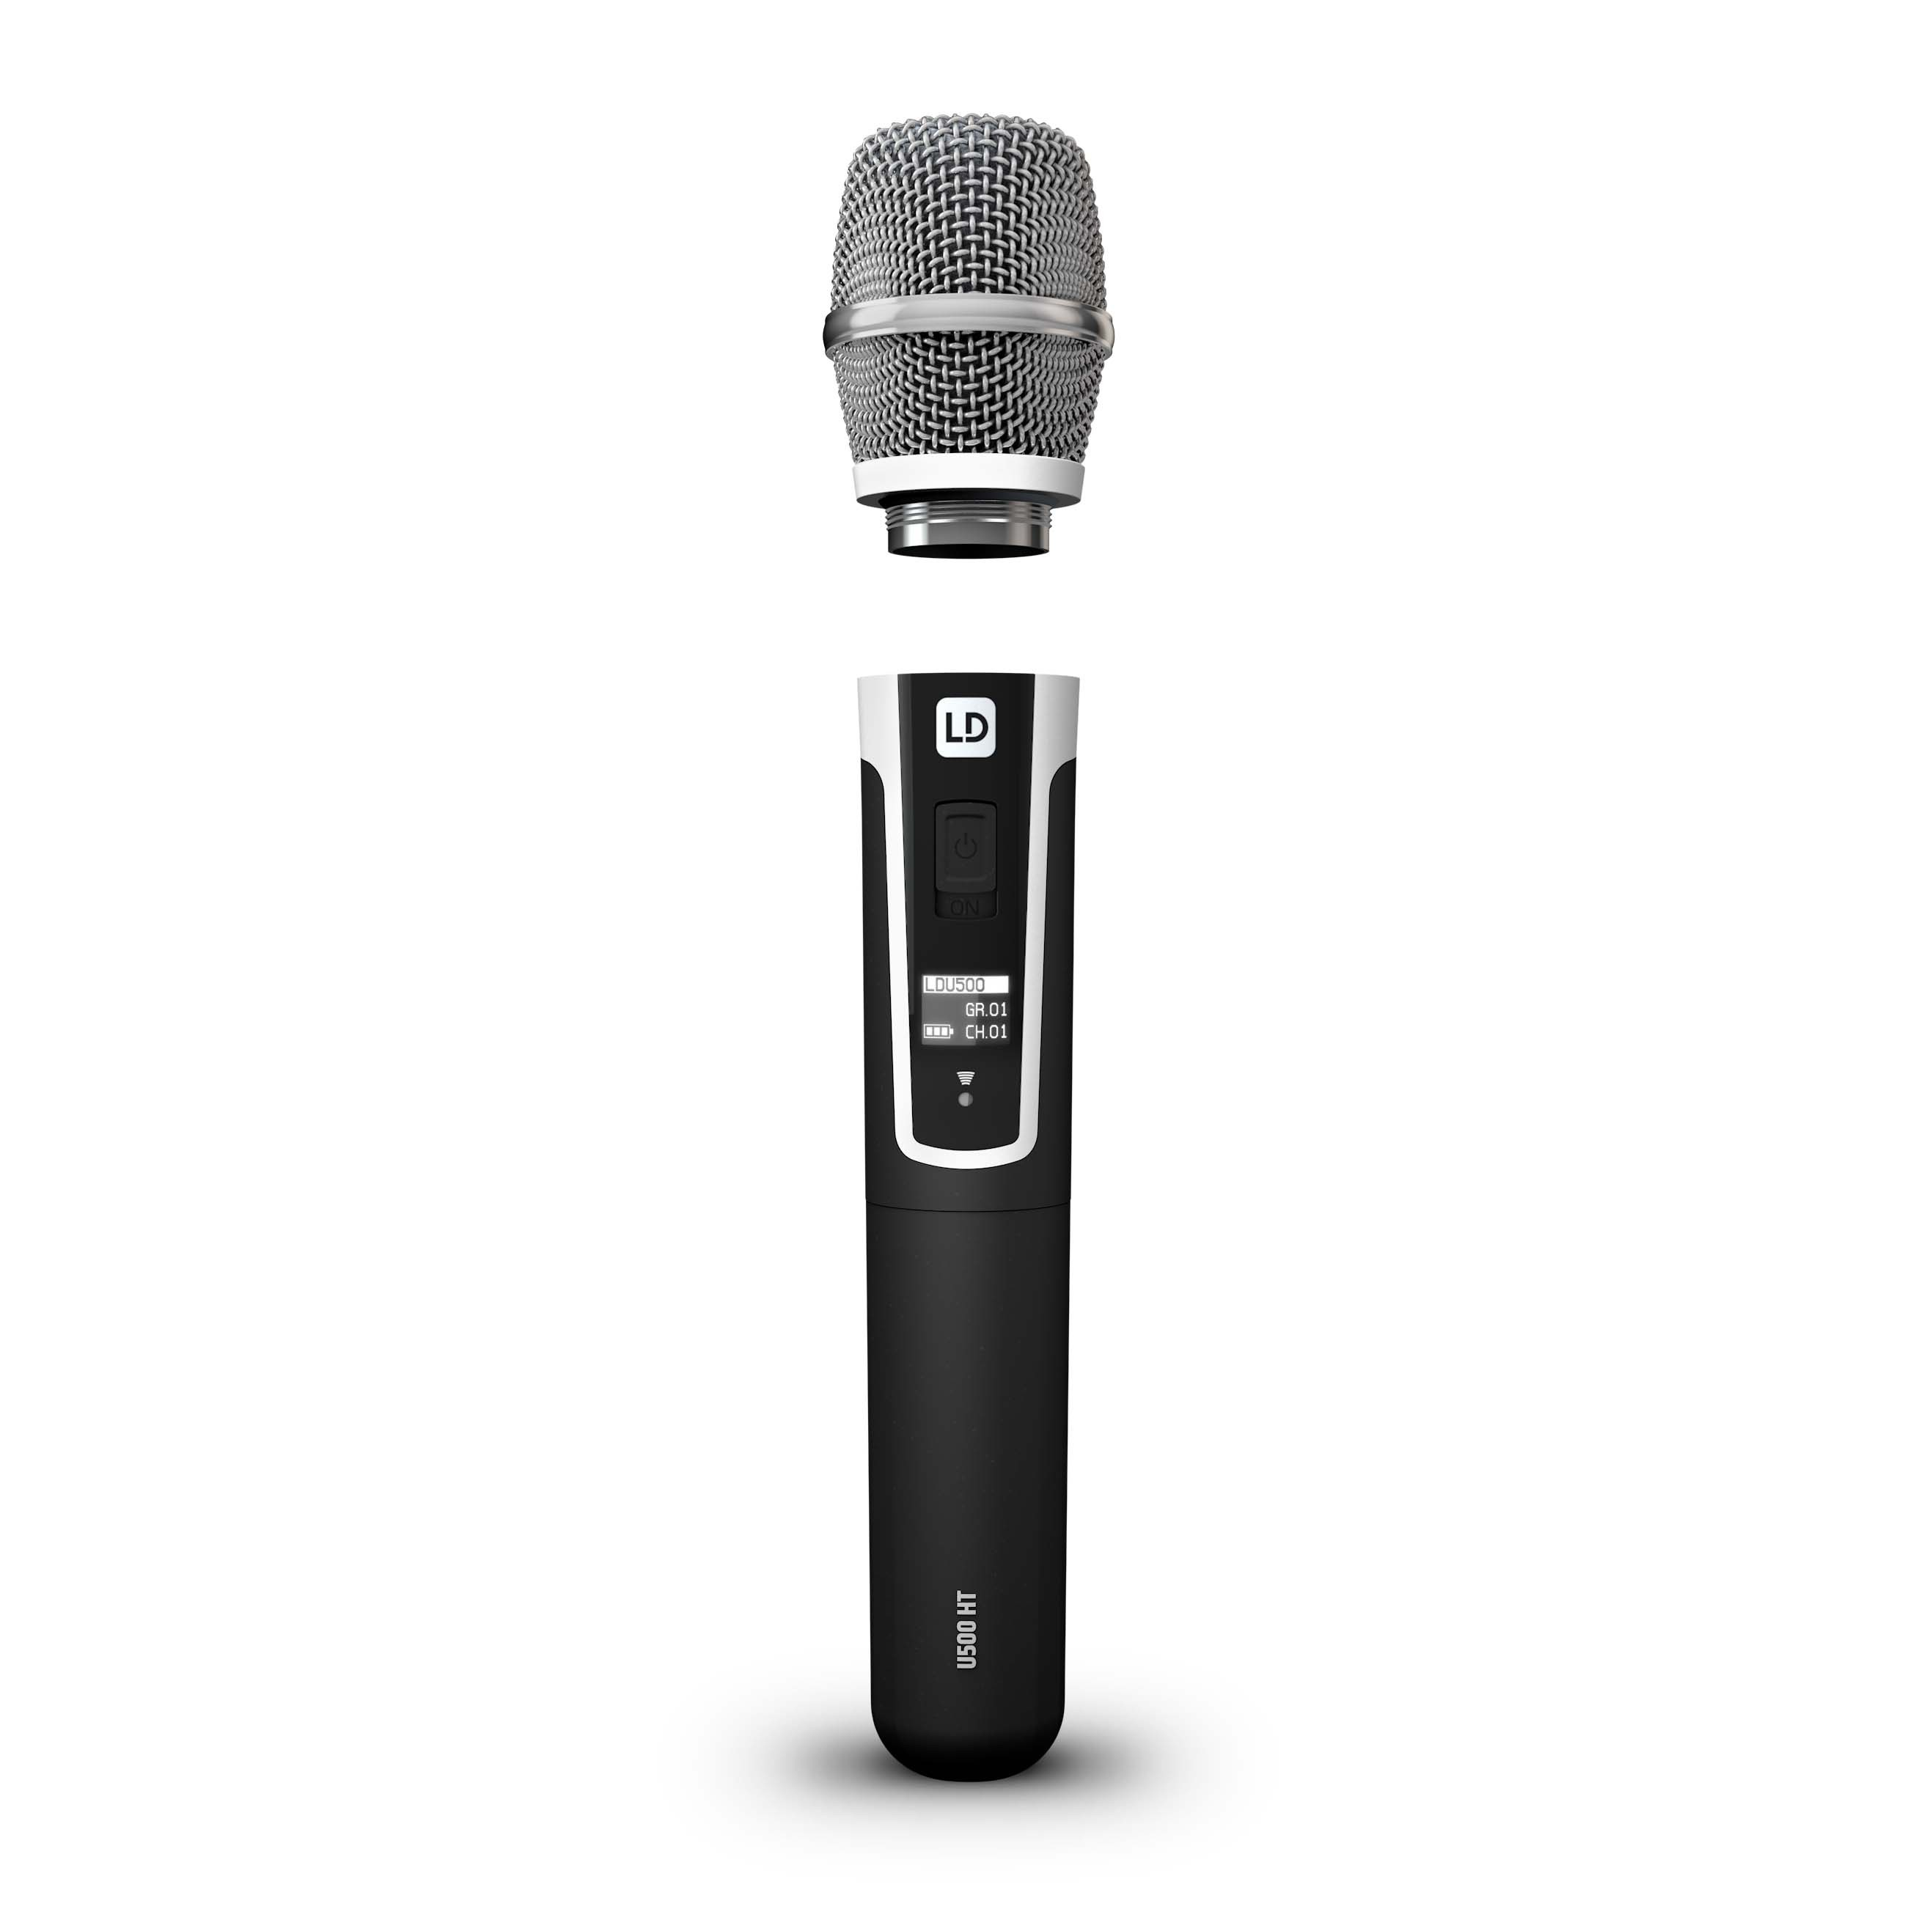 U506 UK HHC 2 Wireless Microphone System with 2 x Condenser Handheld Microphone